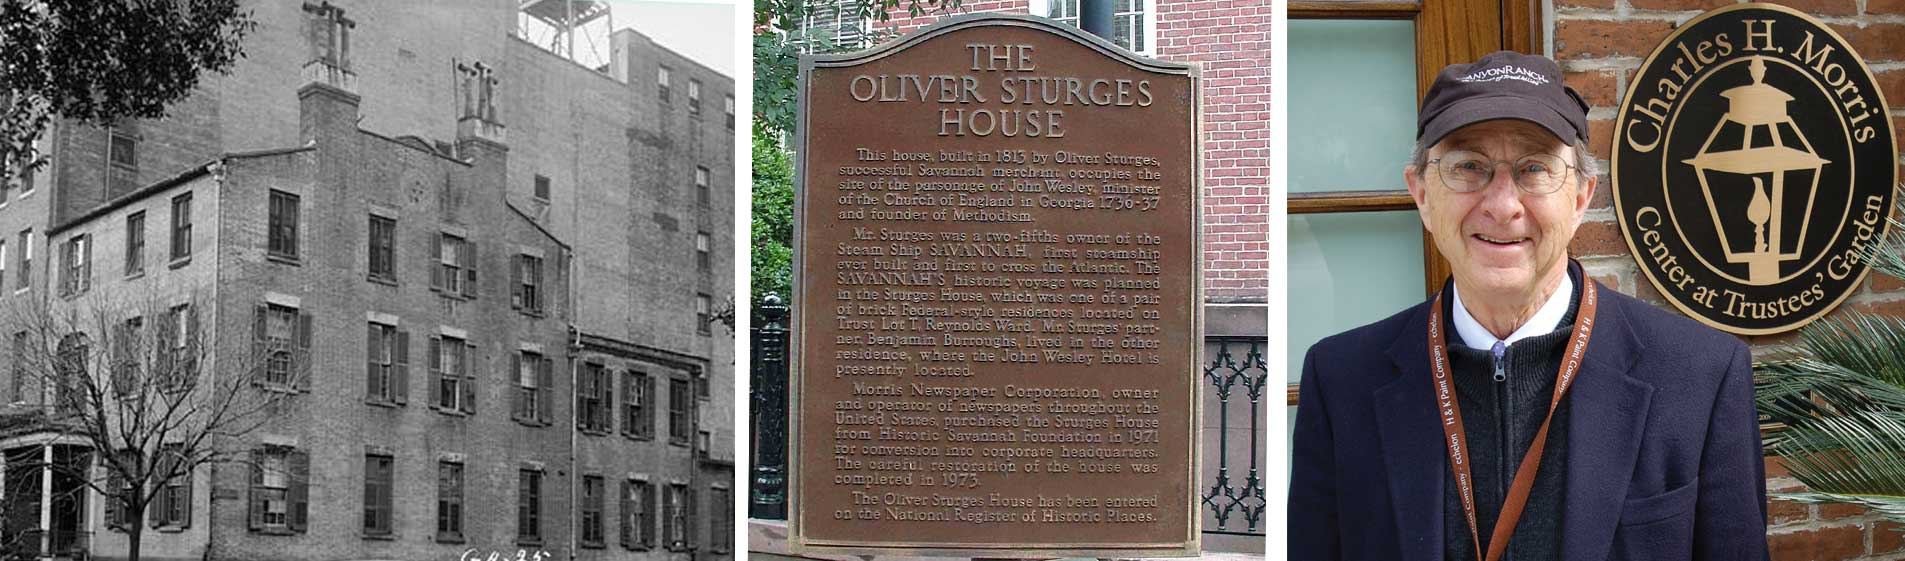 Mr. Charles H Morris and The Oliver Sturges House